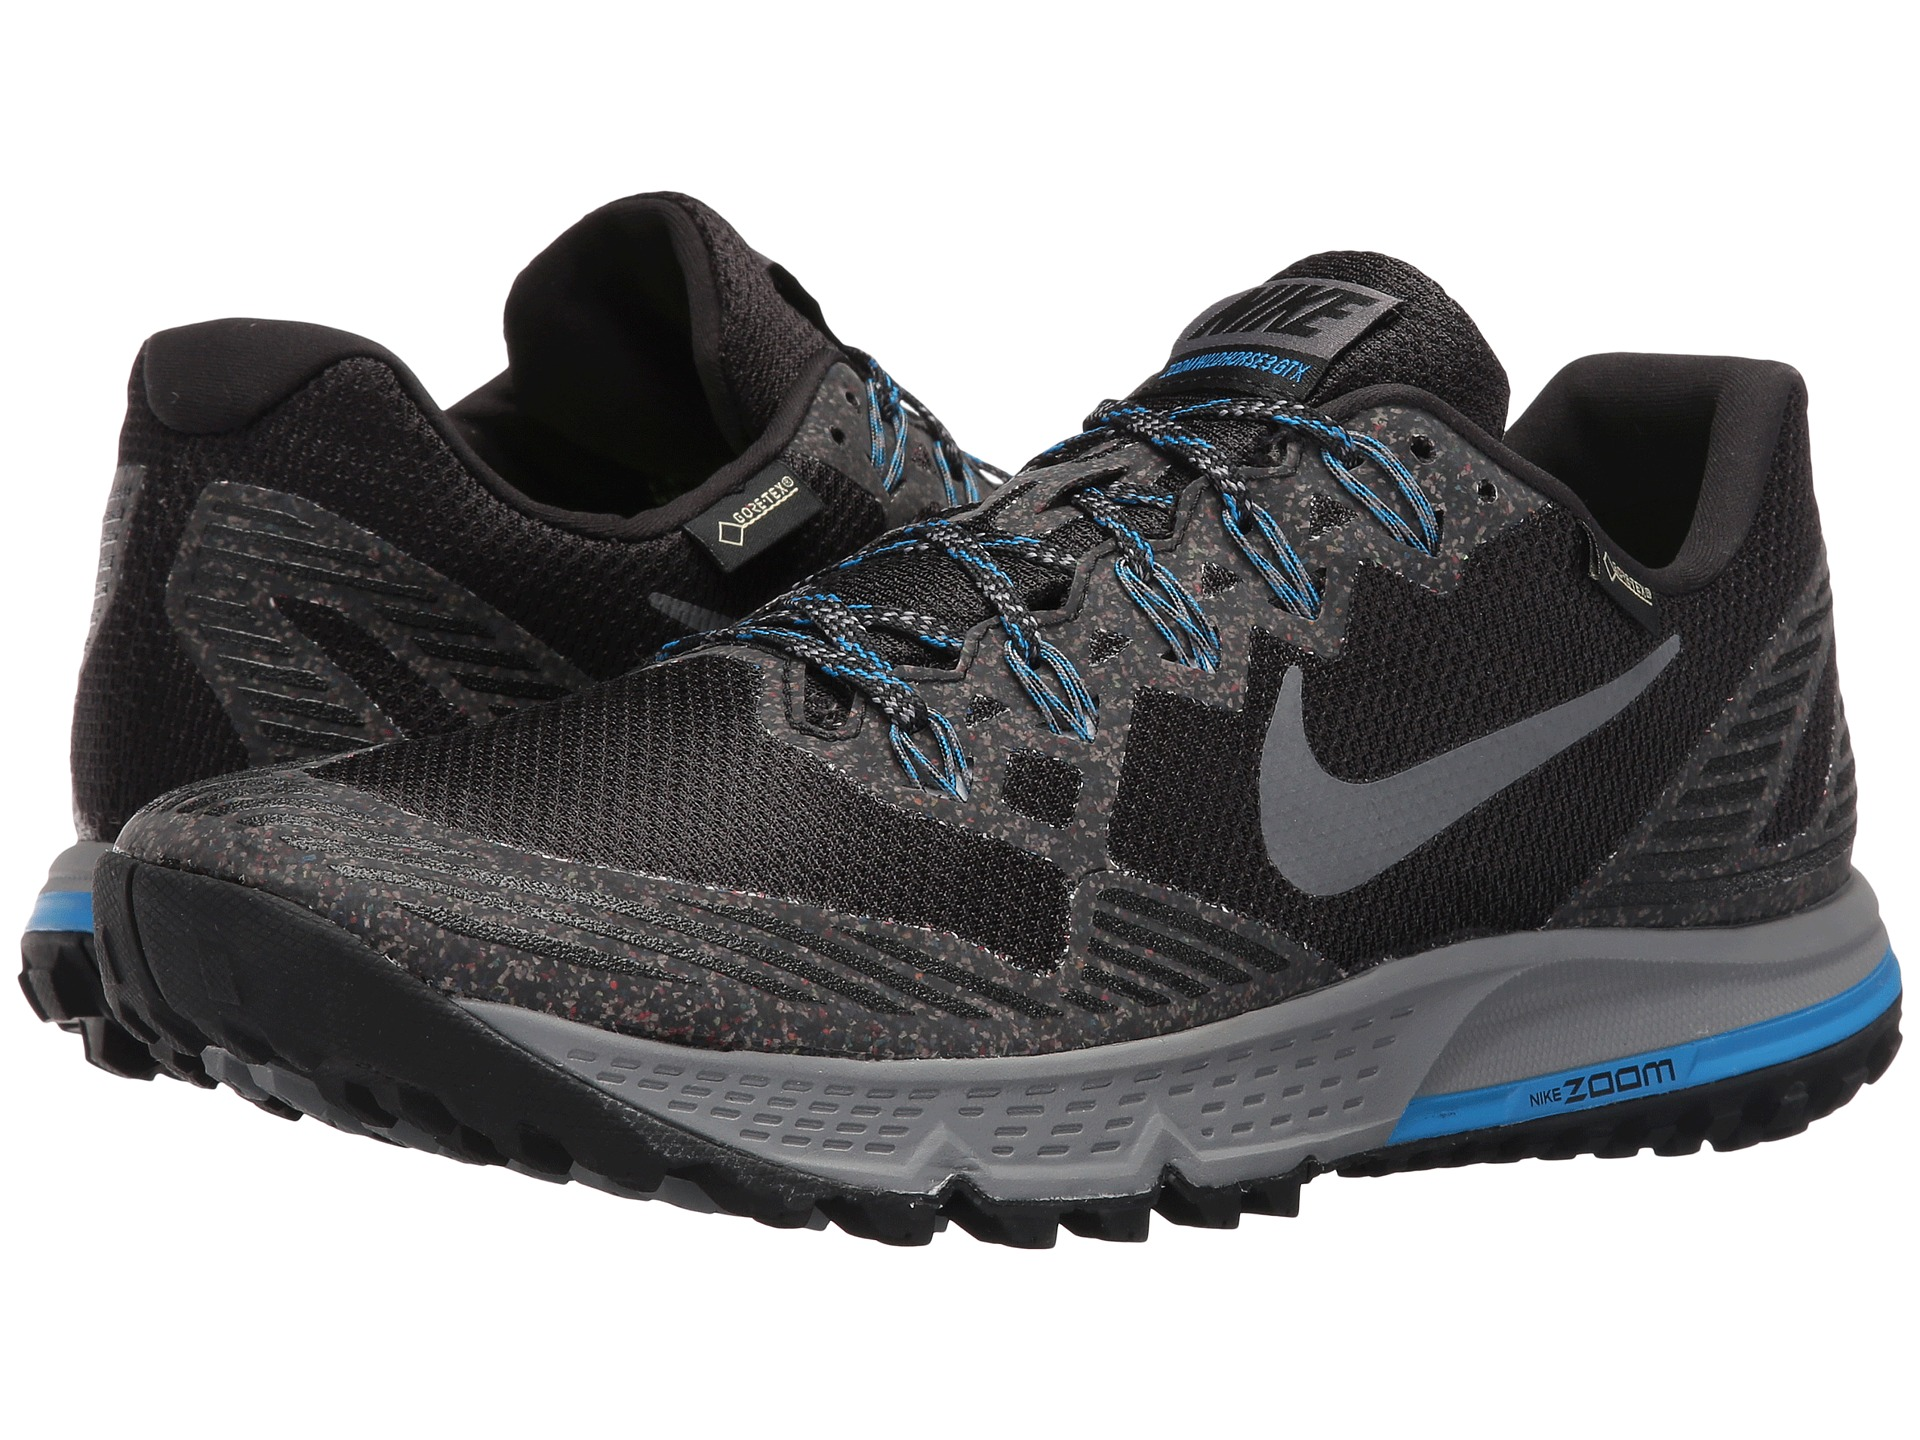 Nike Air Zoom Wildhorse 3 GTX Black/Dark Grey/Photo Blue ...